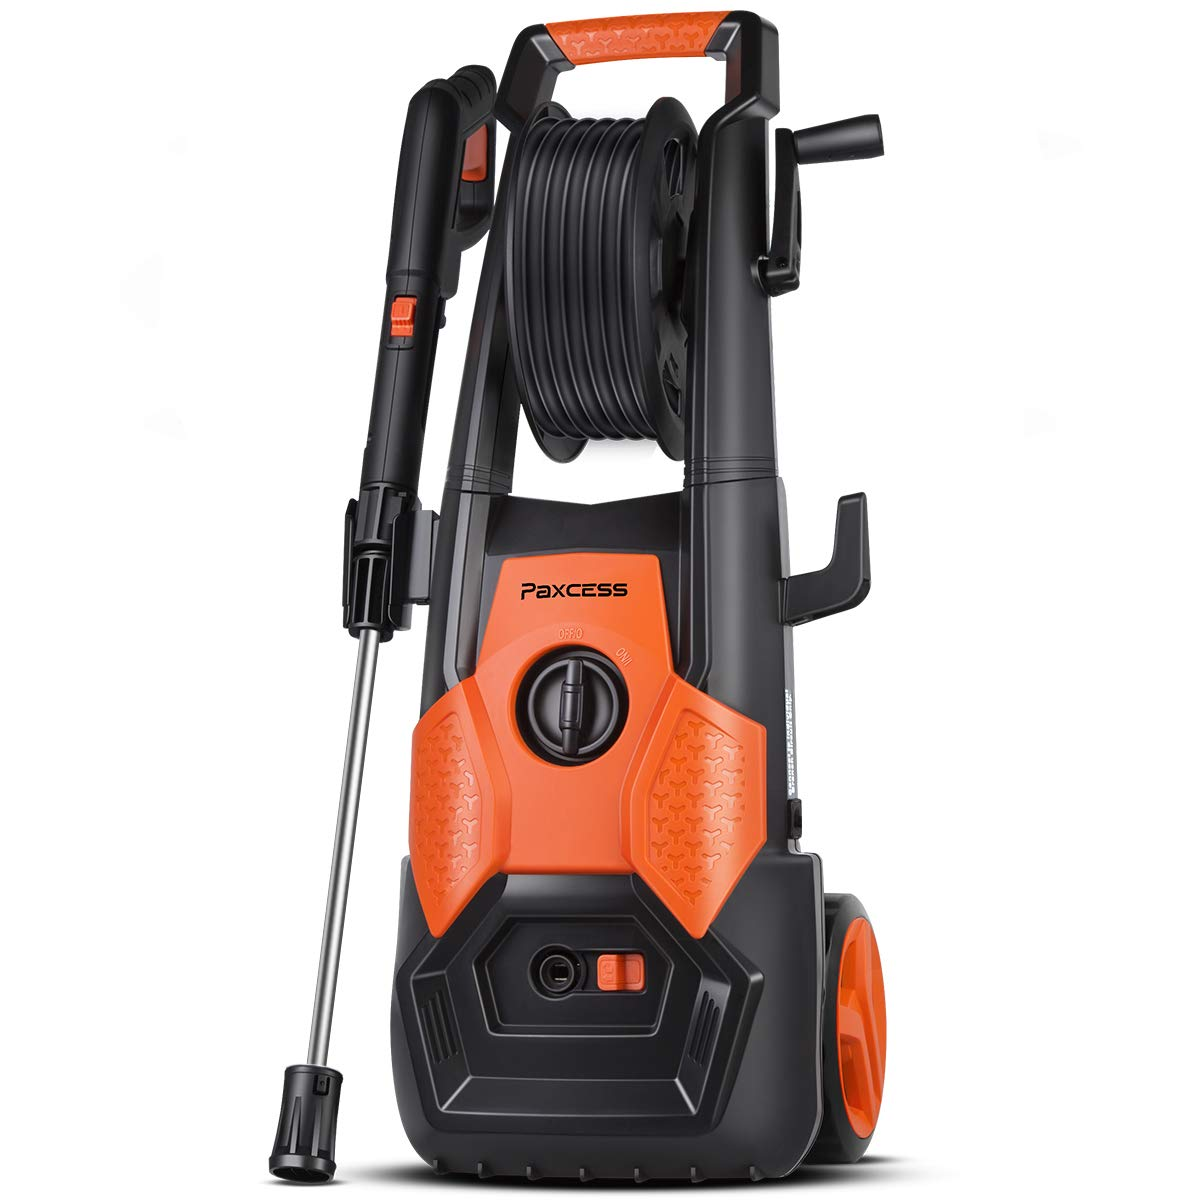 PAXCESS Electric Pressure Washer, 2150 PSI 1.85 GPM Electric Power Washer with Spray Gun, Adjustable Nozzle,26ft High Pressure Hose, Hose Reel (Power Wash Machine, Pressure Cleaner, Car Washer)